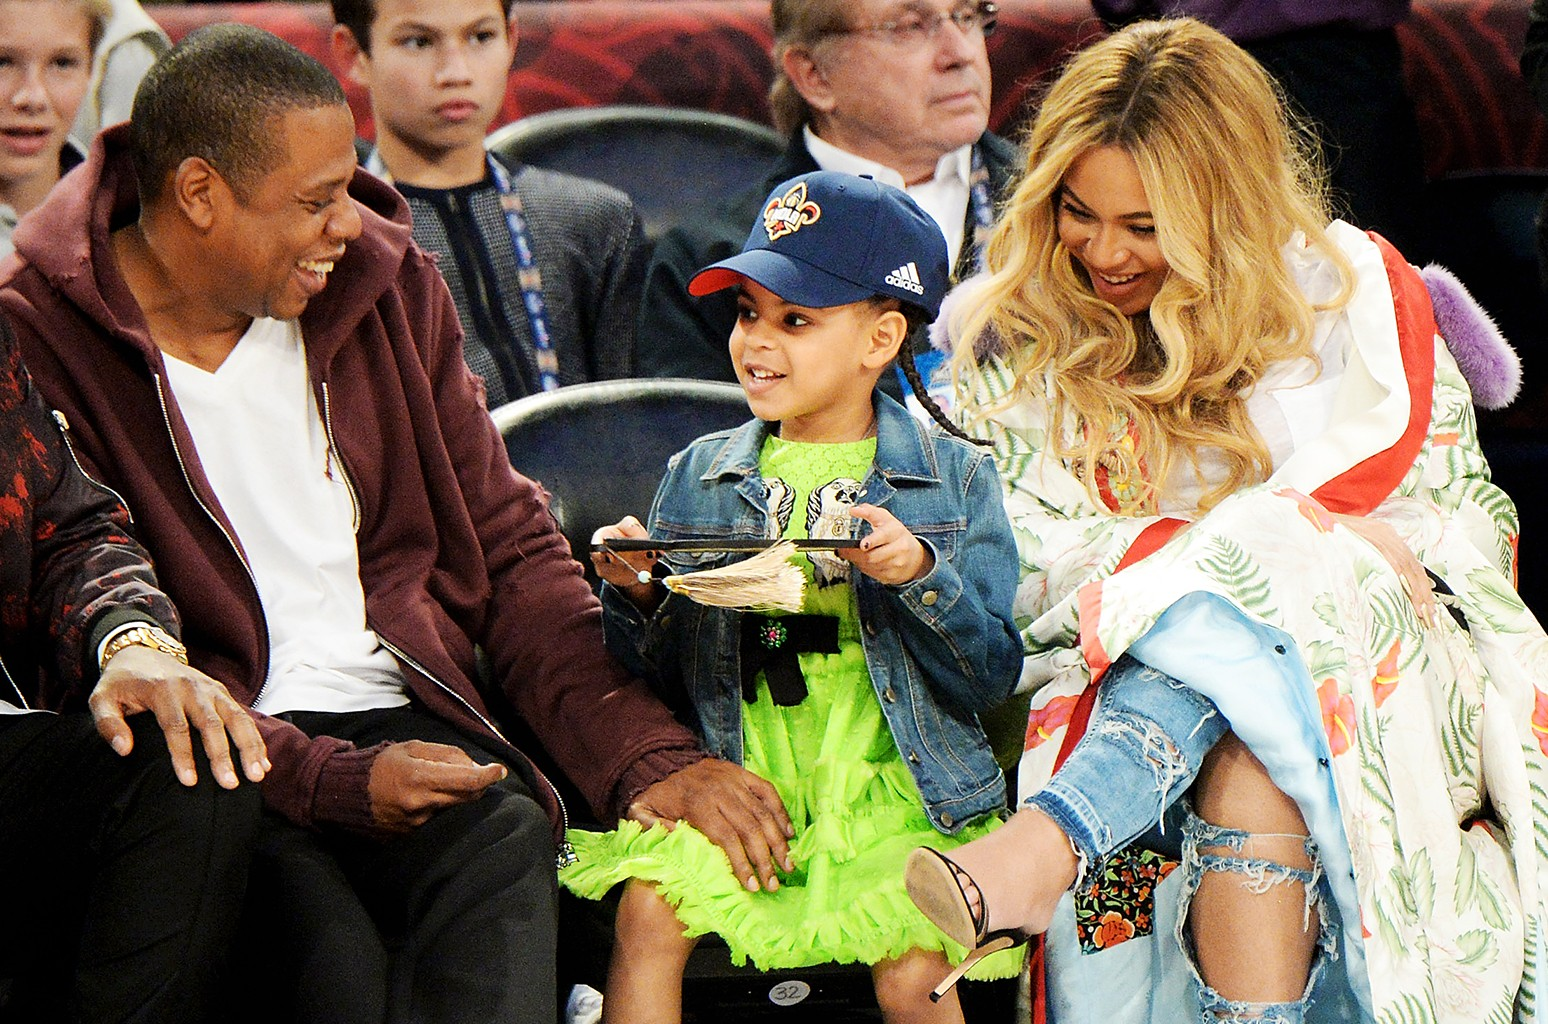 Jay Z, Blue Ivy Carter and Beyonce Knowles attend the 66th NBA All-Star Game at Smoothie King Center on Feb. 19, 2017 in New Orleans.